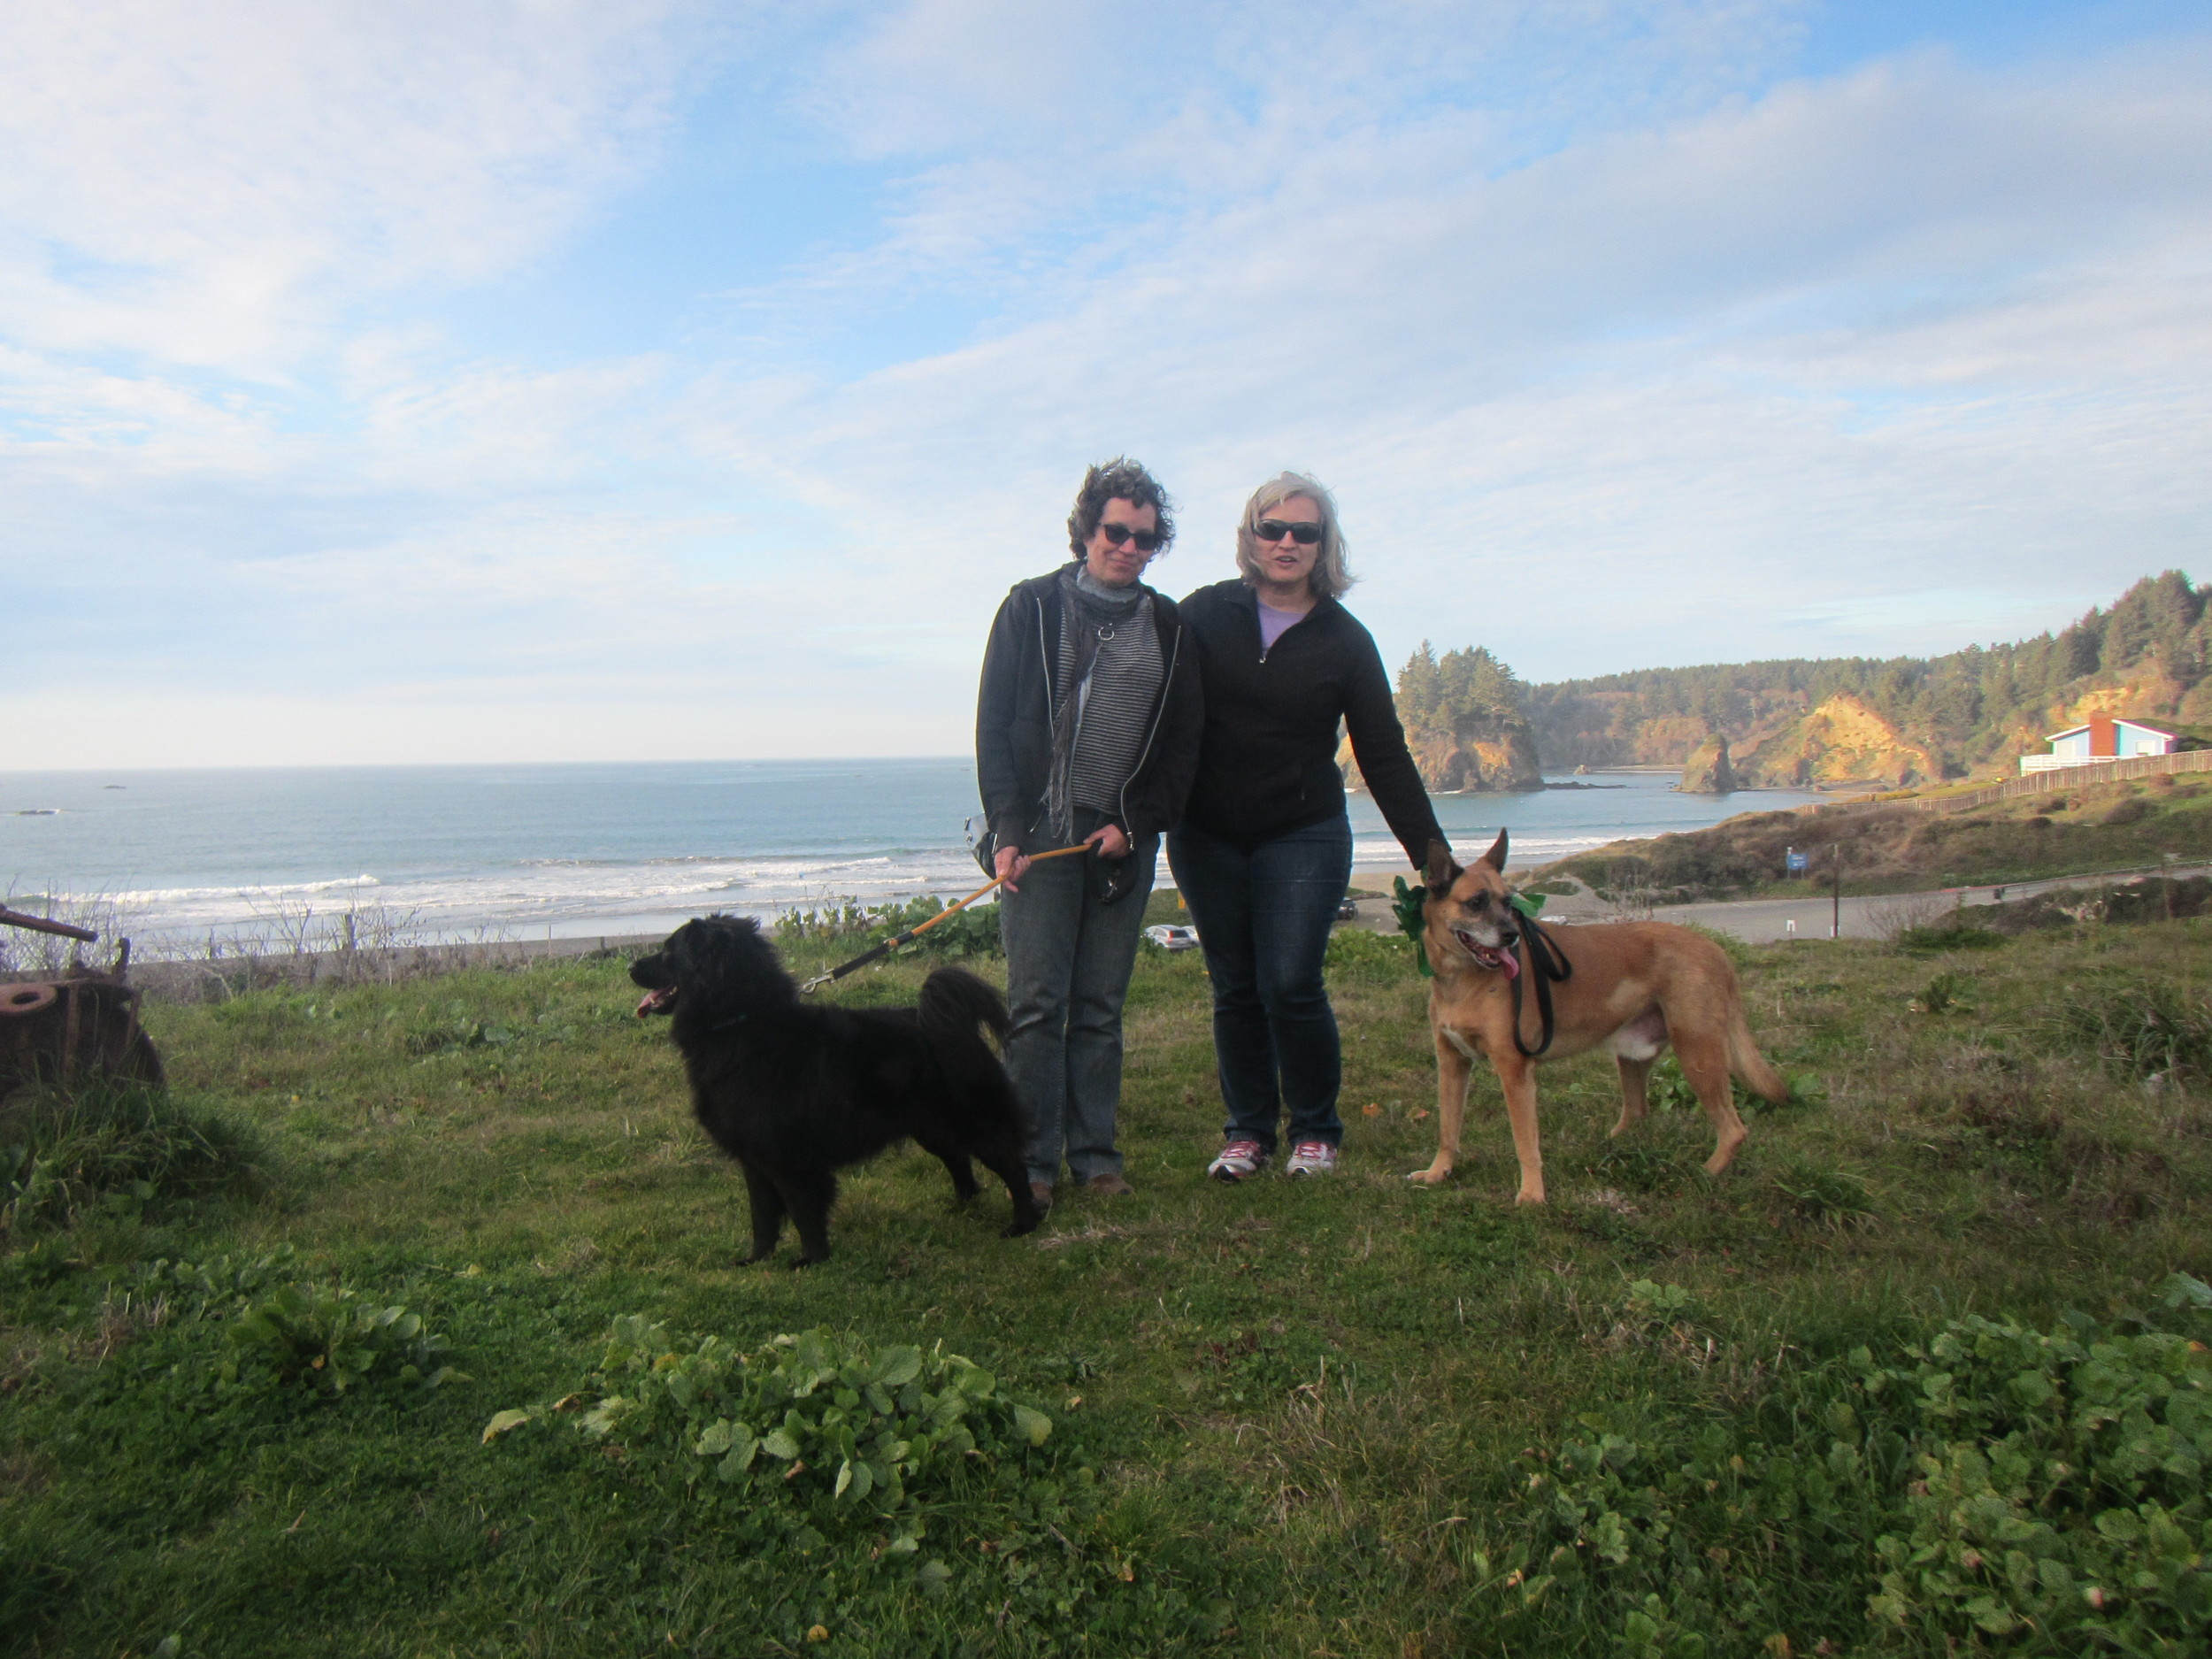 With bff Harriet and our dogs at Trinidad State Beach.